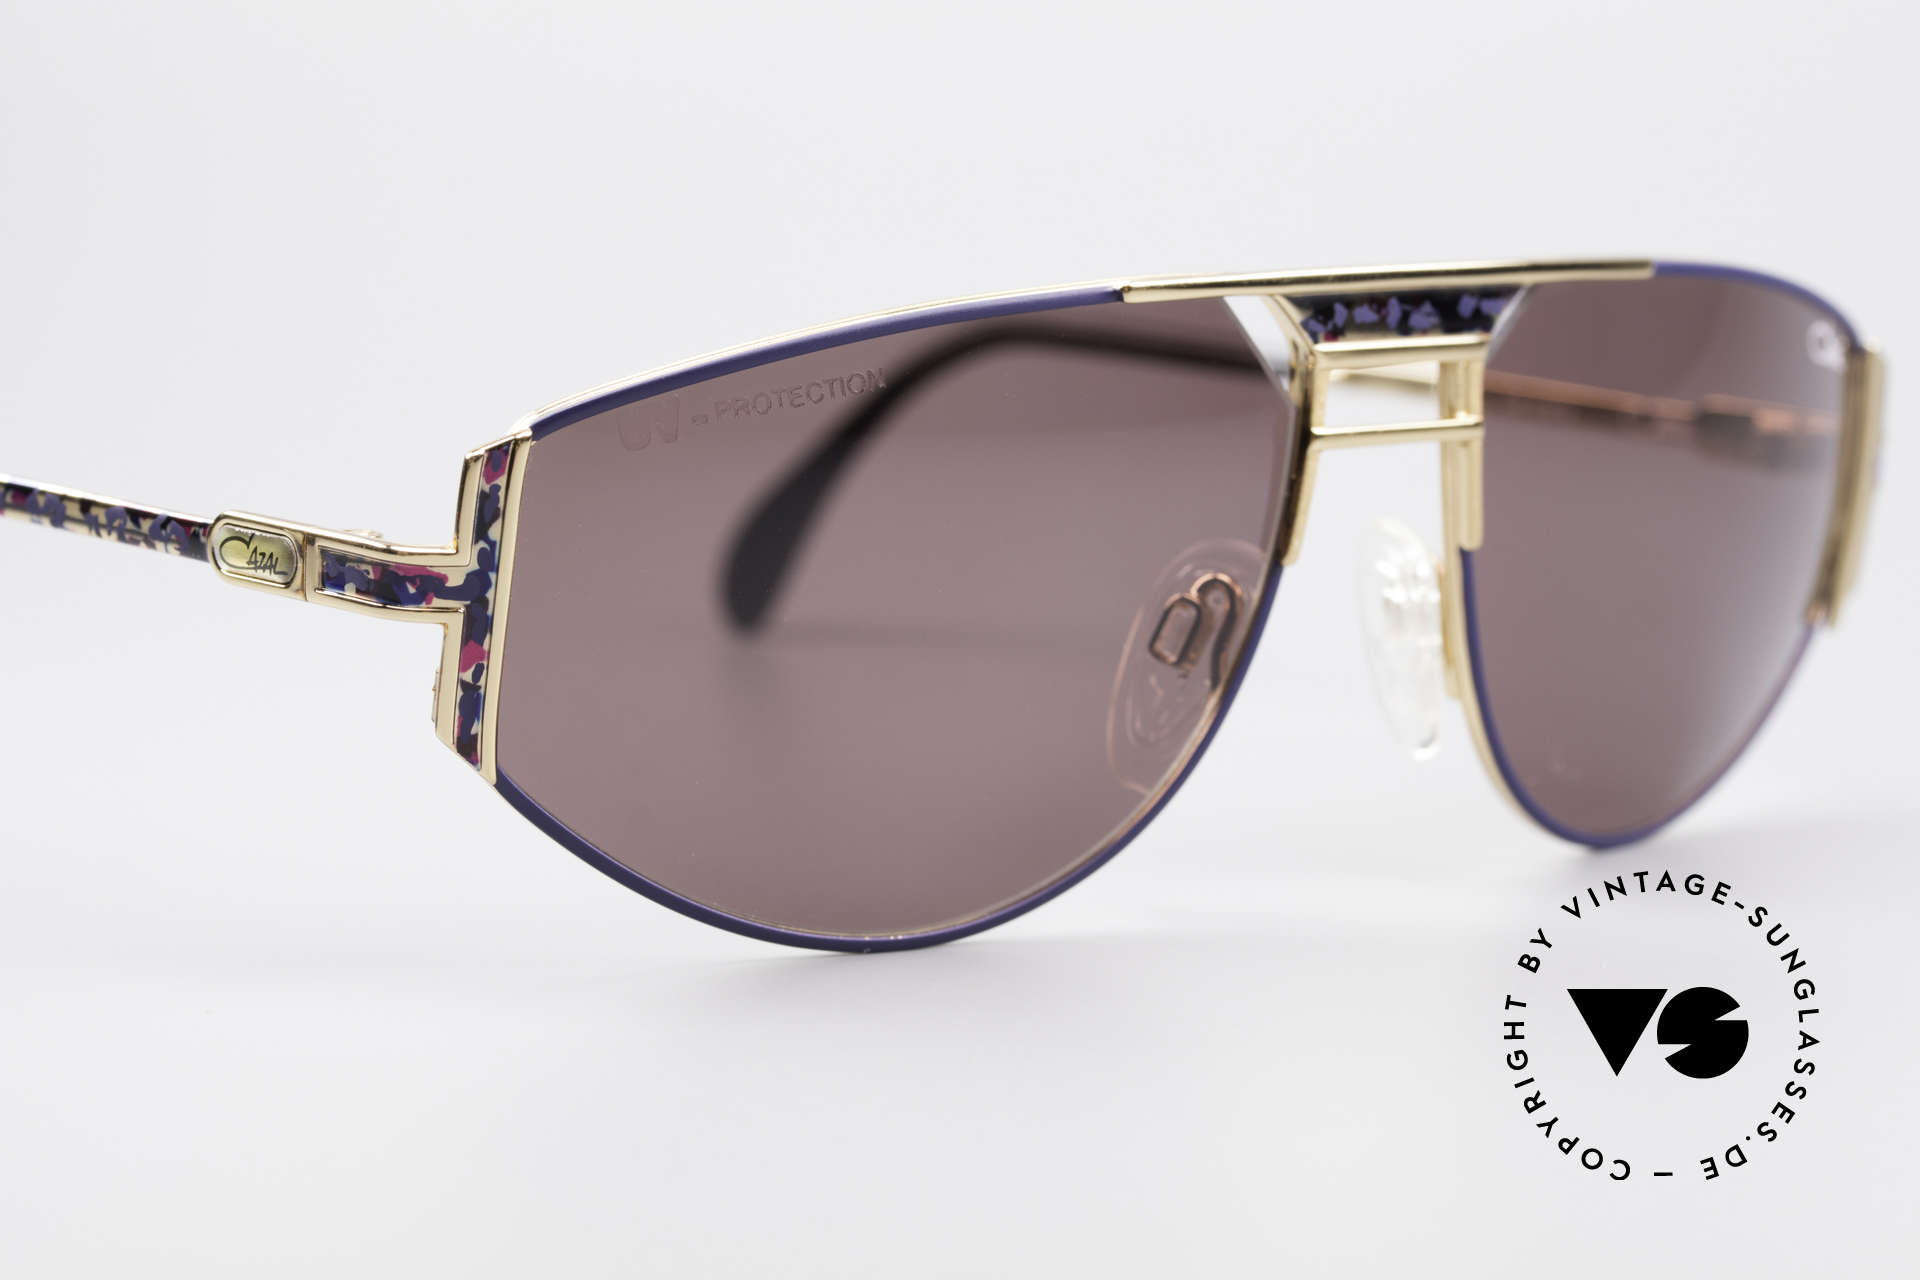 Cazal 964 True Vintage 90s Sunglasses, perfect frame for an individual look; cult sunglasses!, Made for Men and Women